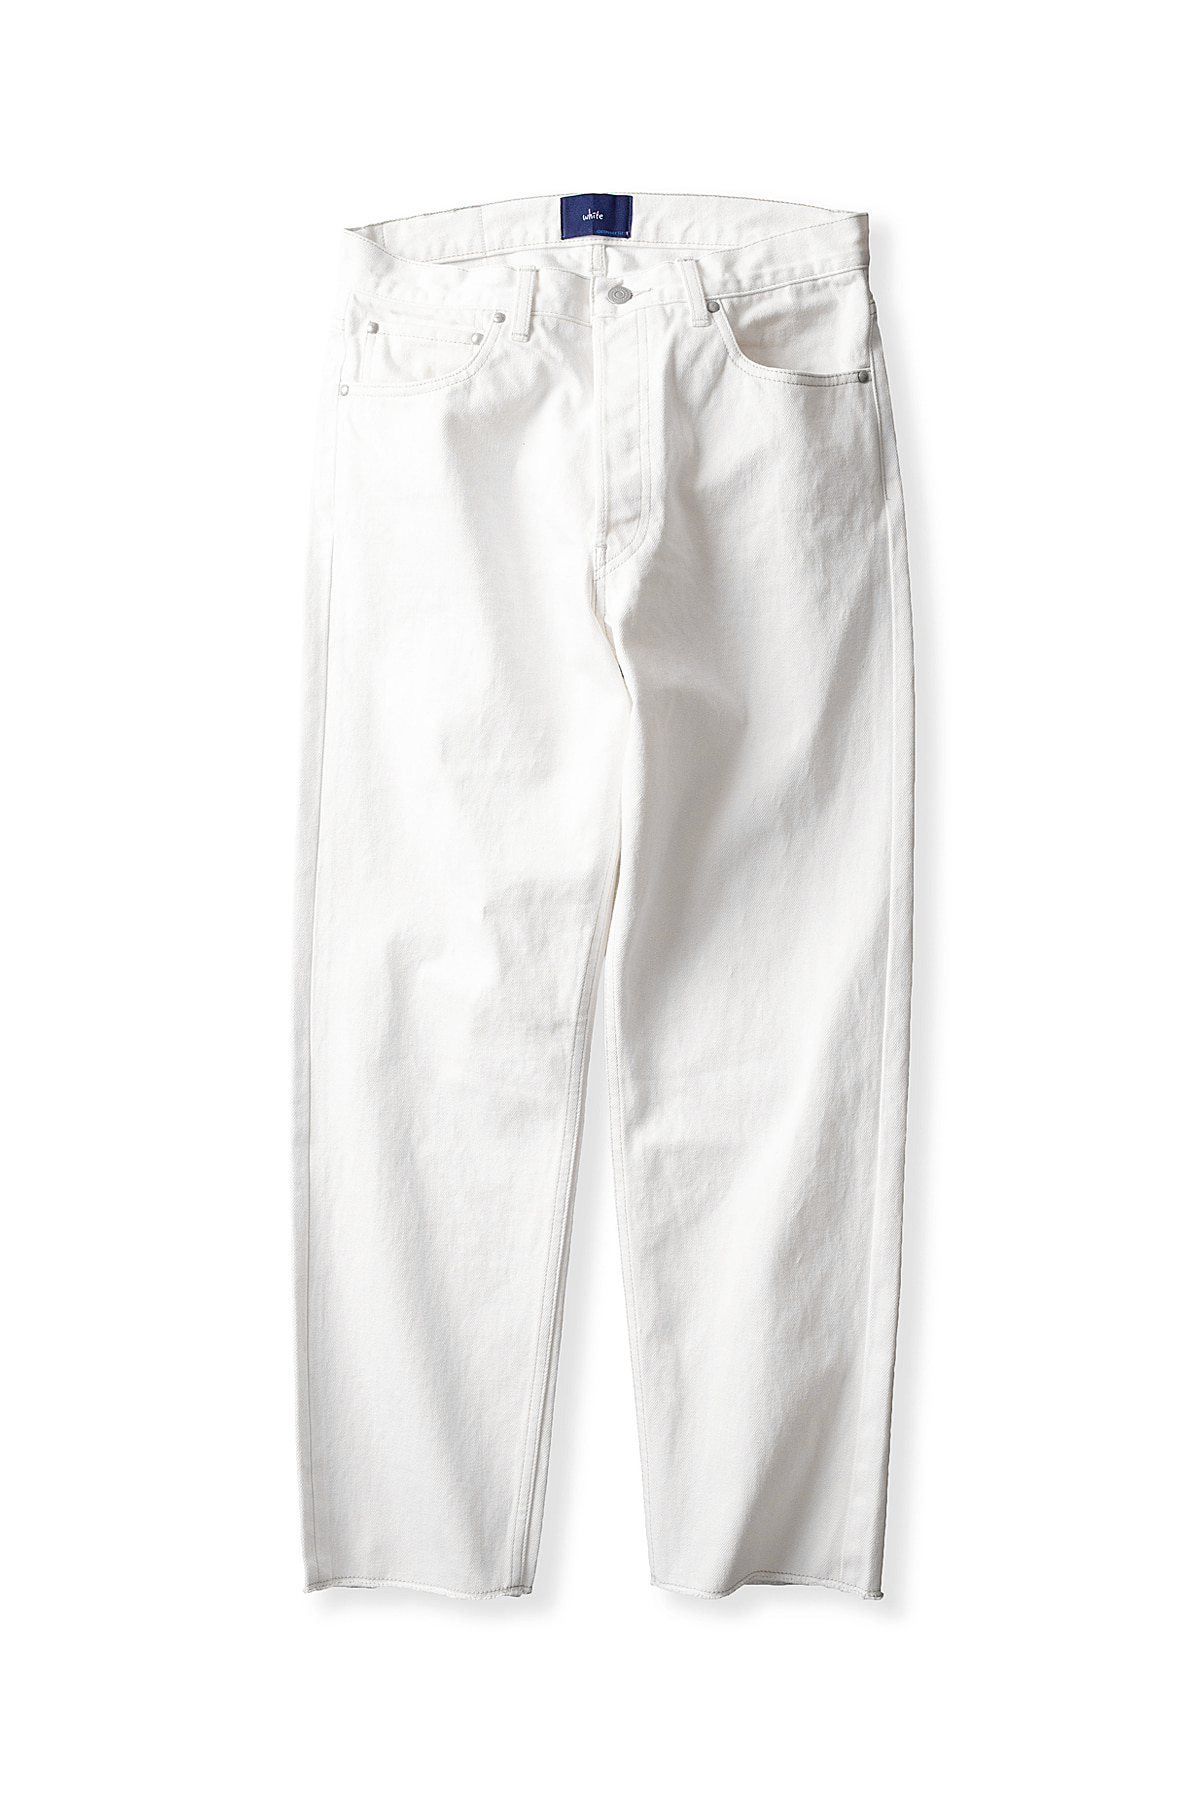 Ordinary fits #WHITE : New John Denim One Wash (White)